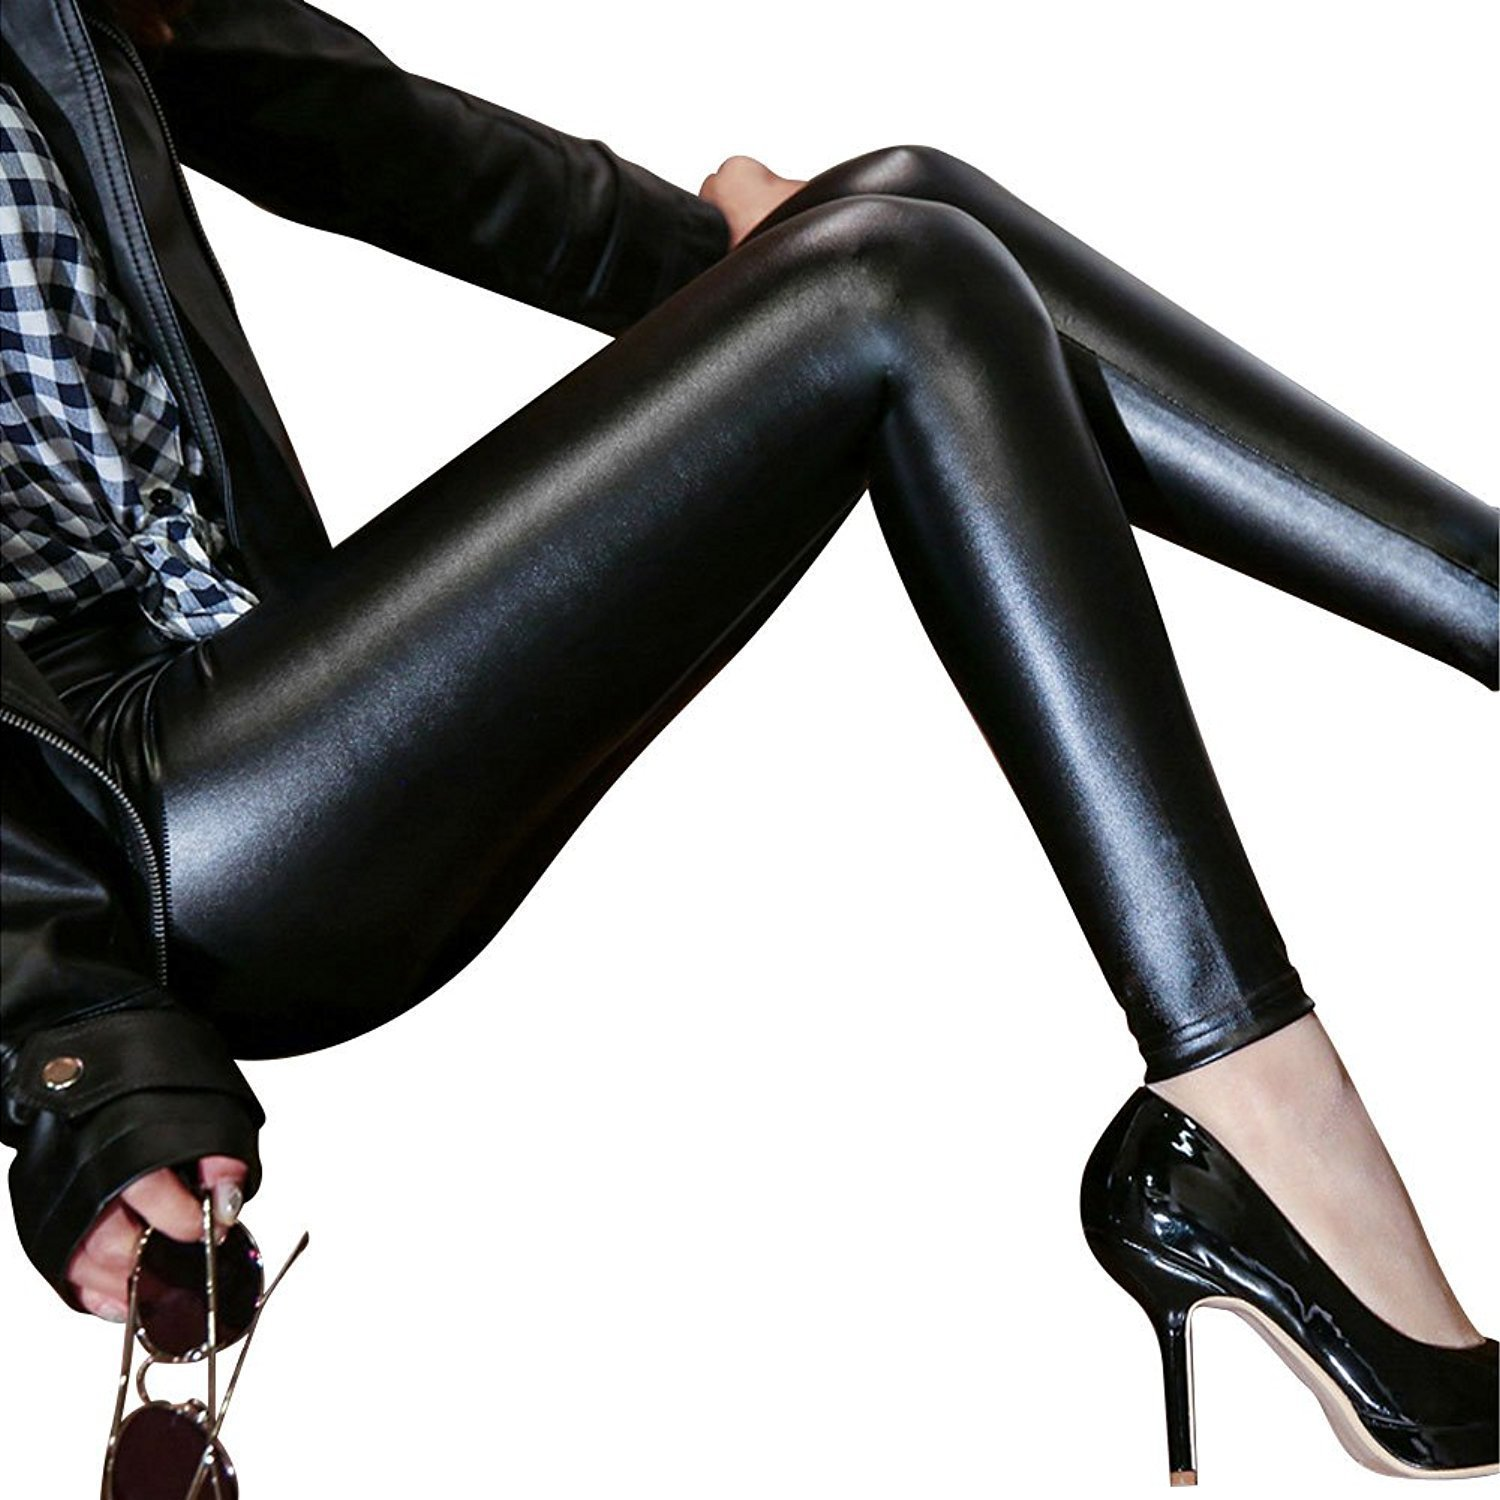 cd8bd3acd3e Amazon.com: Women's Stretchy Faux Leather Leggings Pants, Sexy Black High  Waisted Tights: Clothing